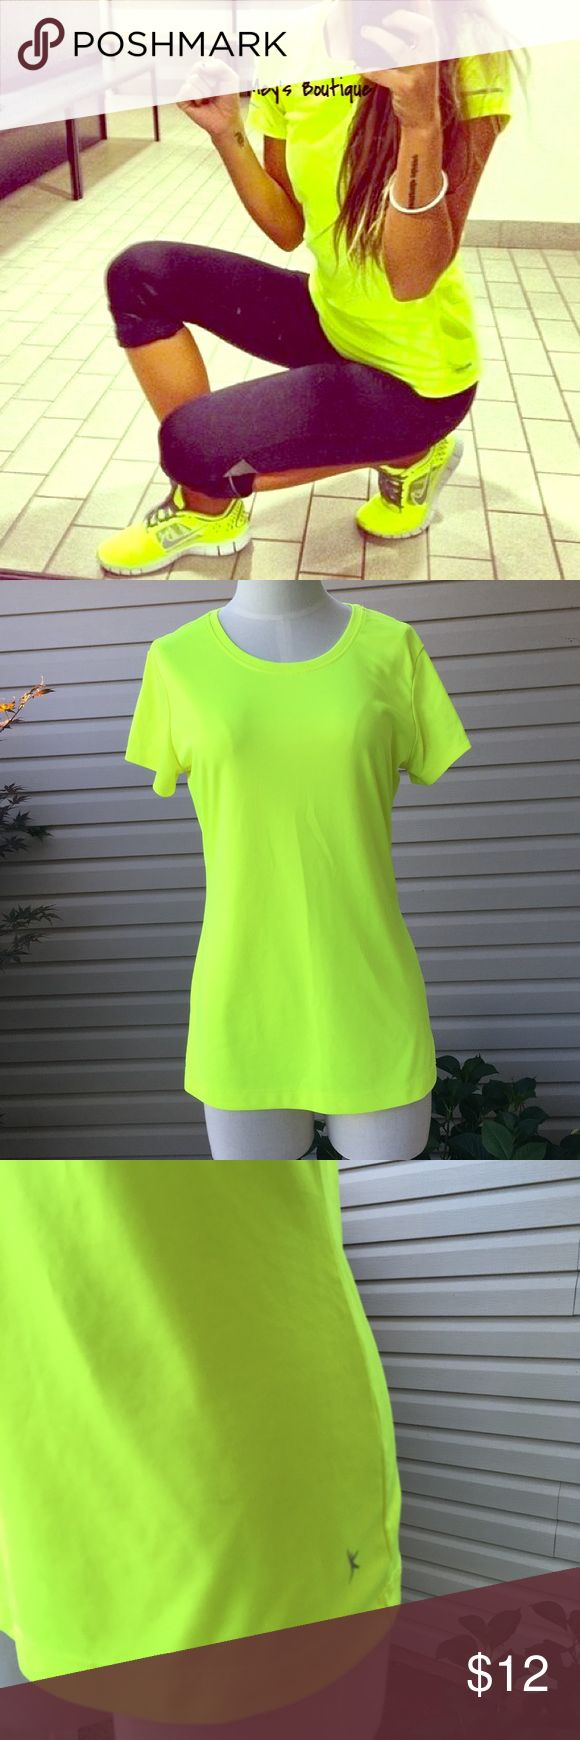 ⭐️Danskin Yellow Workout Women's Tee Size M⭐️ ⭐️Danskin Yellow Workout Women's Tee Size M⭐️ Danskin Brand. Excellent Condition! Very sleek. Perfect for workouts-water resistant. Next day shipping. All sales are final. Danskin Tops Tees - Short Sleeve